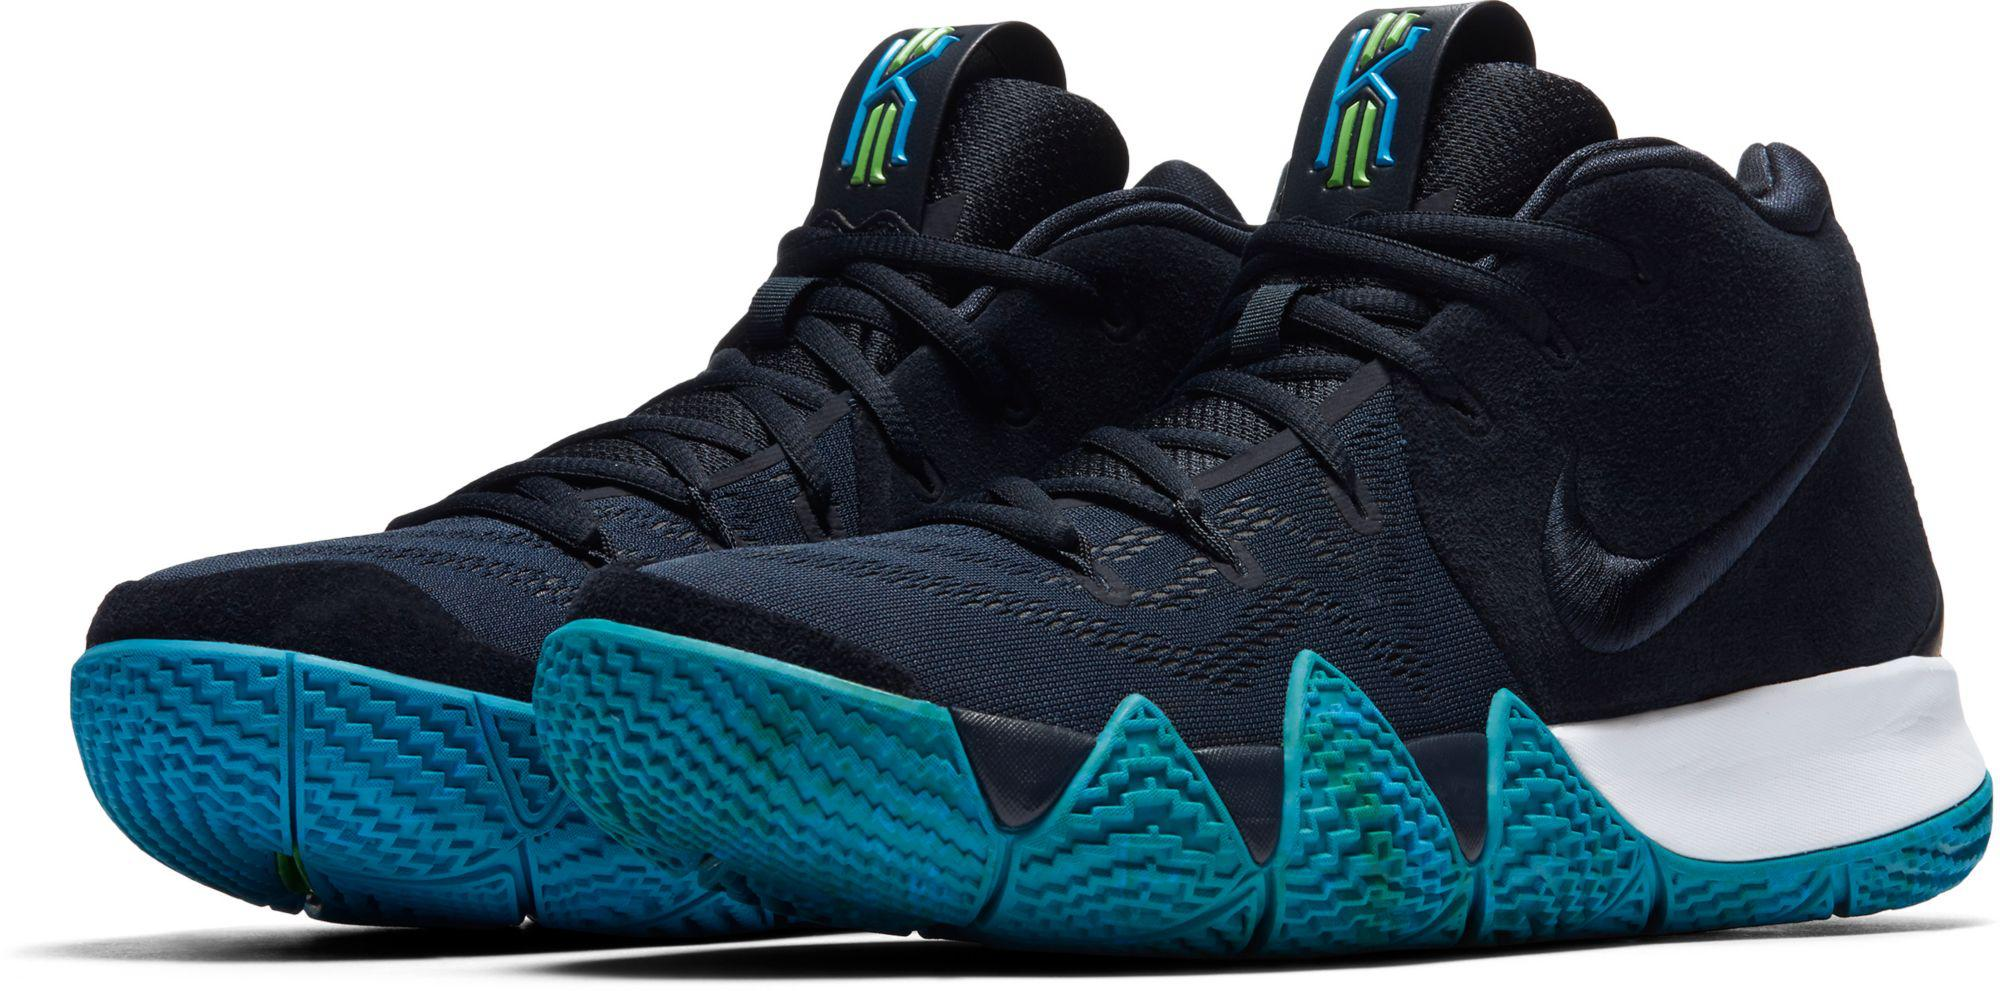 wholesale dealer 2eafd d4739 Nike Blue Kyrie 4 Basketball Shoes for men